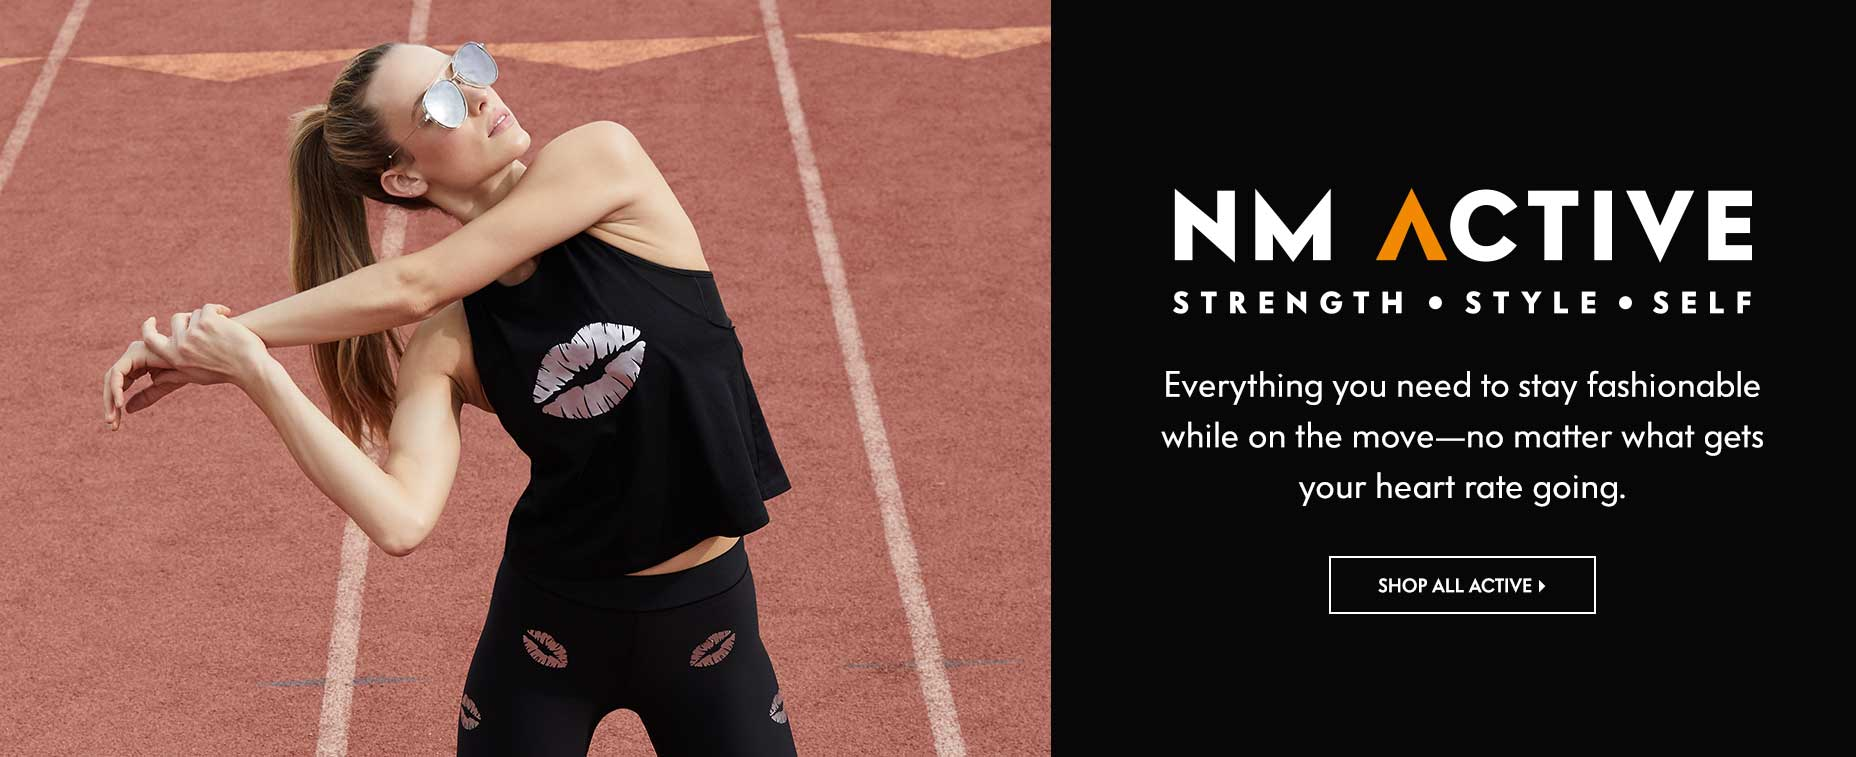 NM Active: Strength. Style. Self - Everything you need to stay fashionable while on the move-no matter what gets your heart rate going.